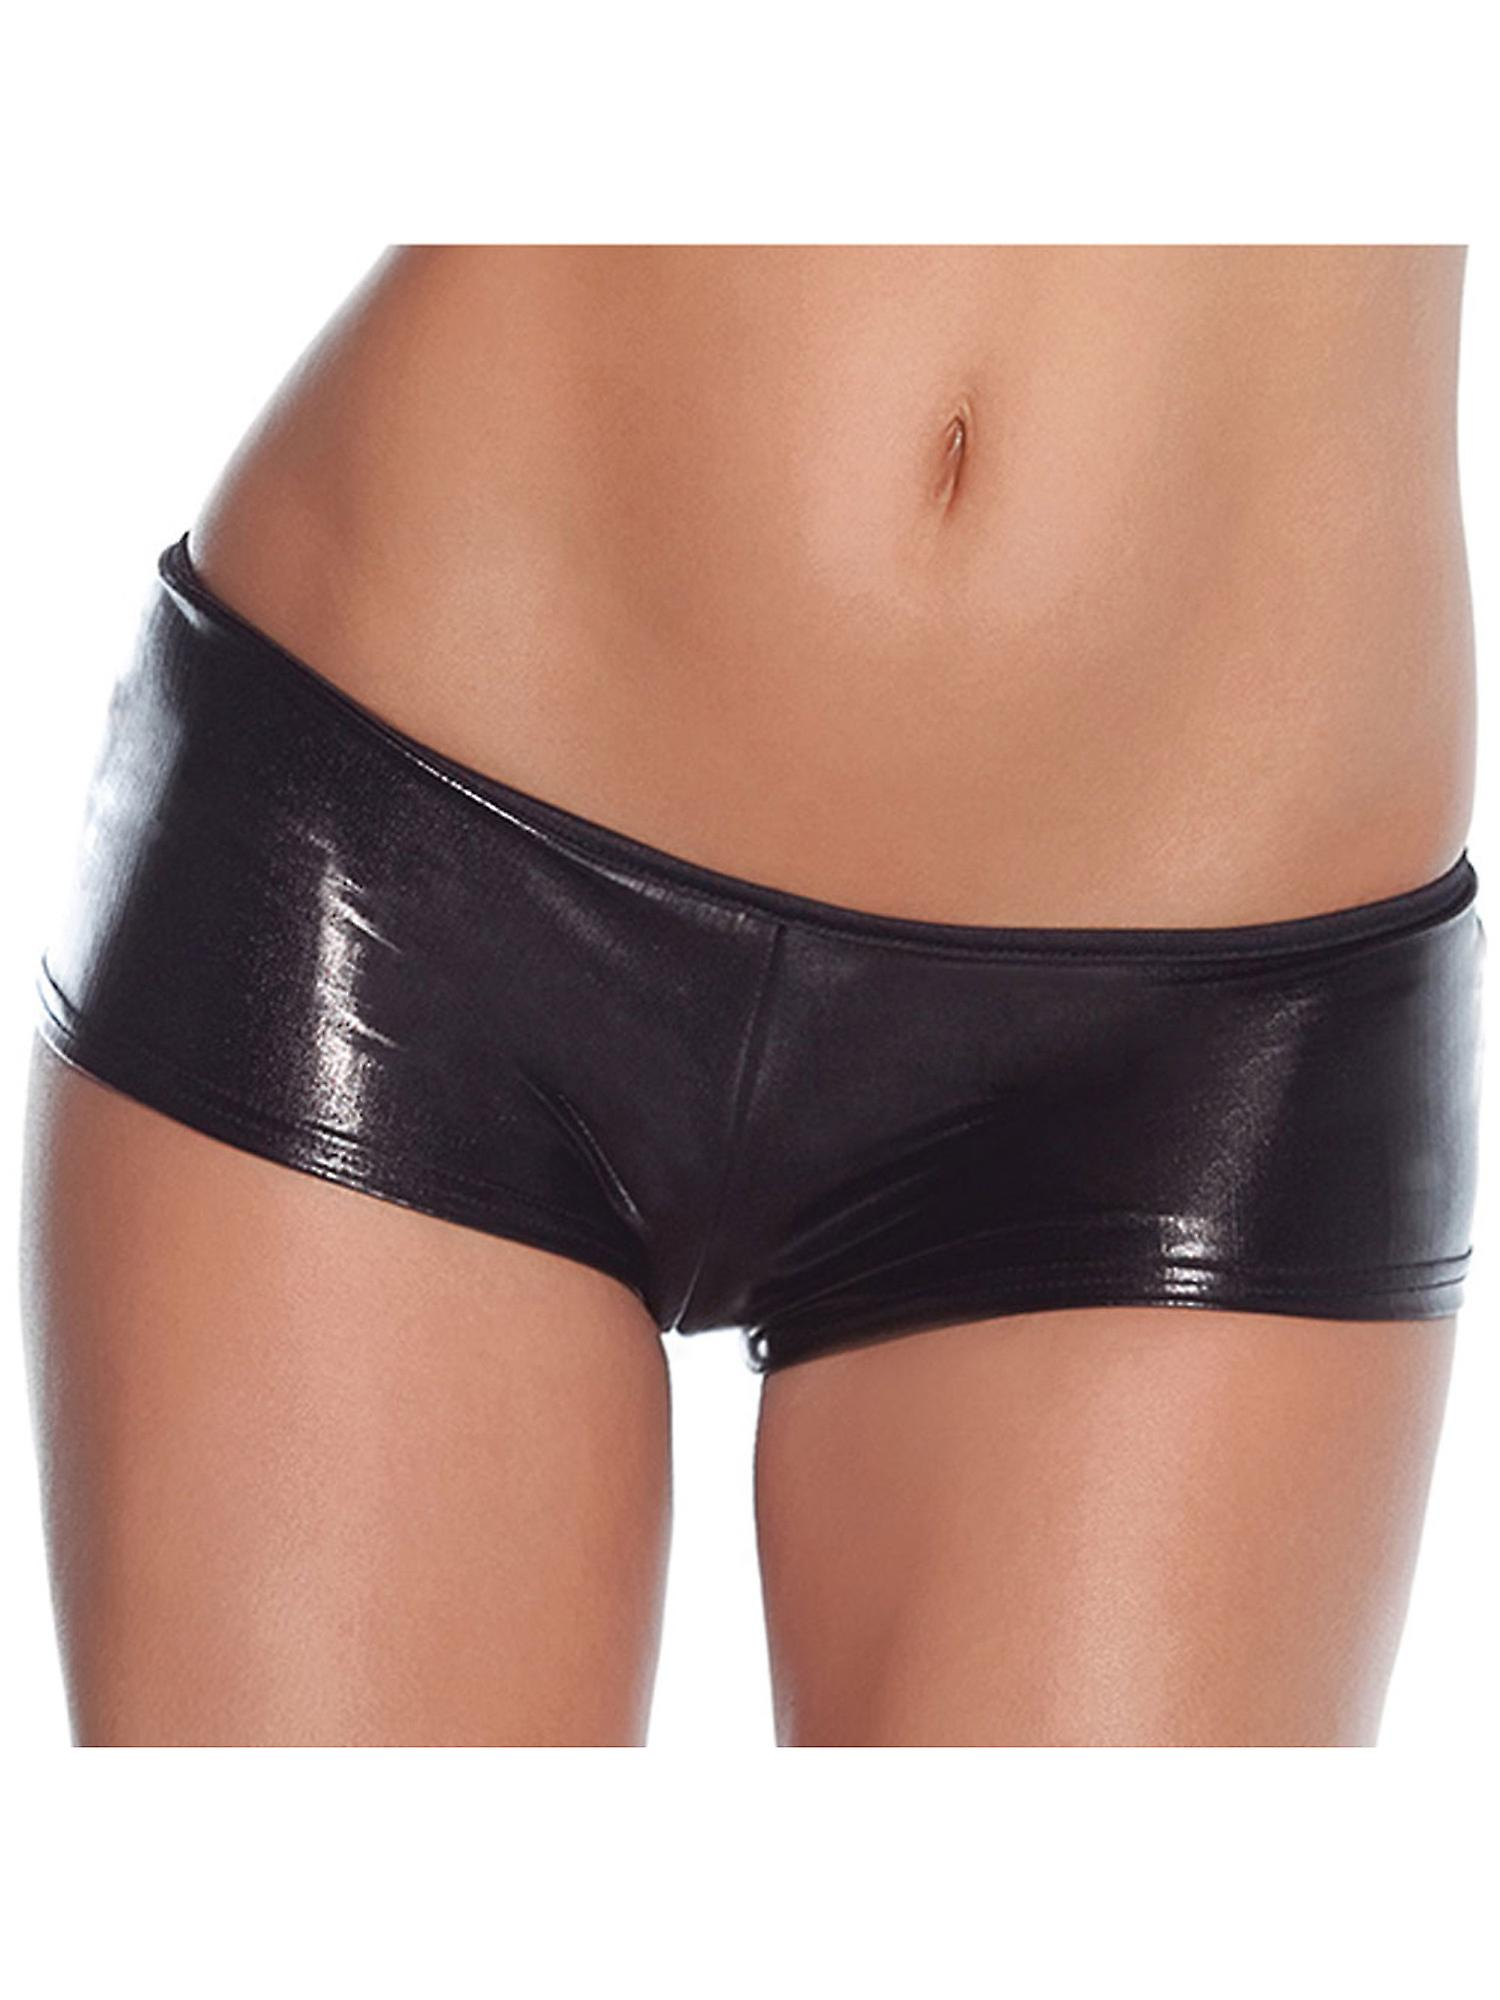 Coquette Women's Sexy Mini Shorts in Wetlook Black Kinky Stretchy Fabric